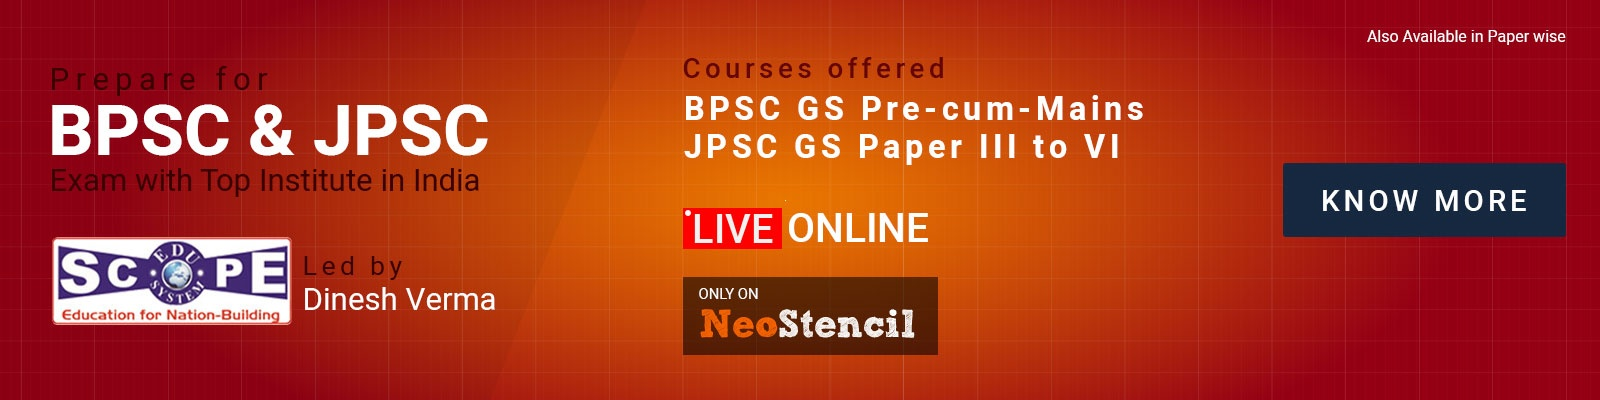 BPSC and JPSC Online courses